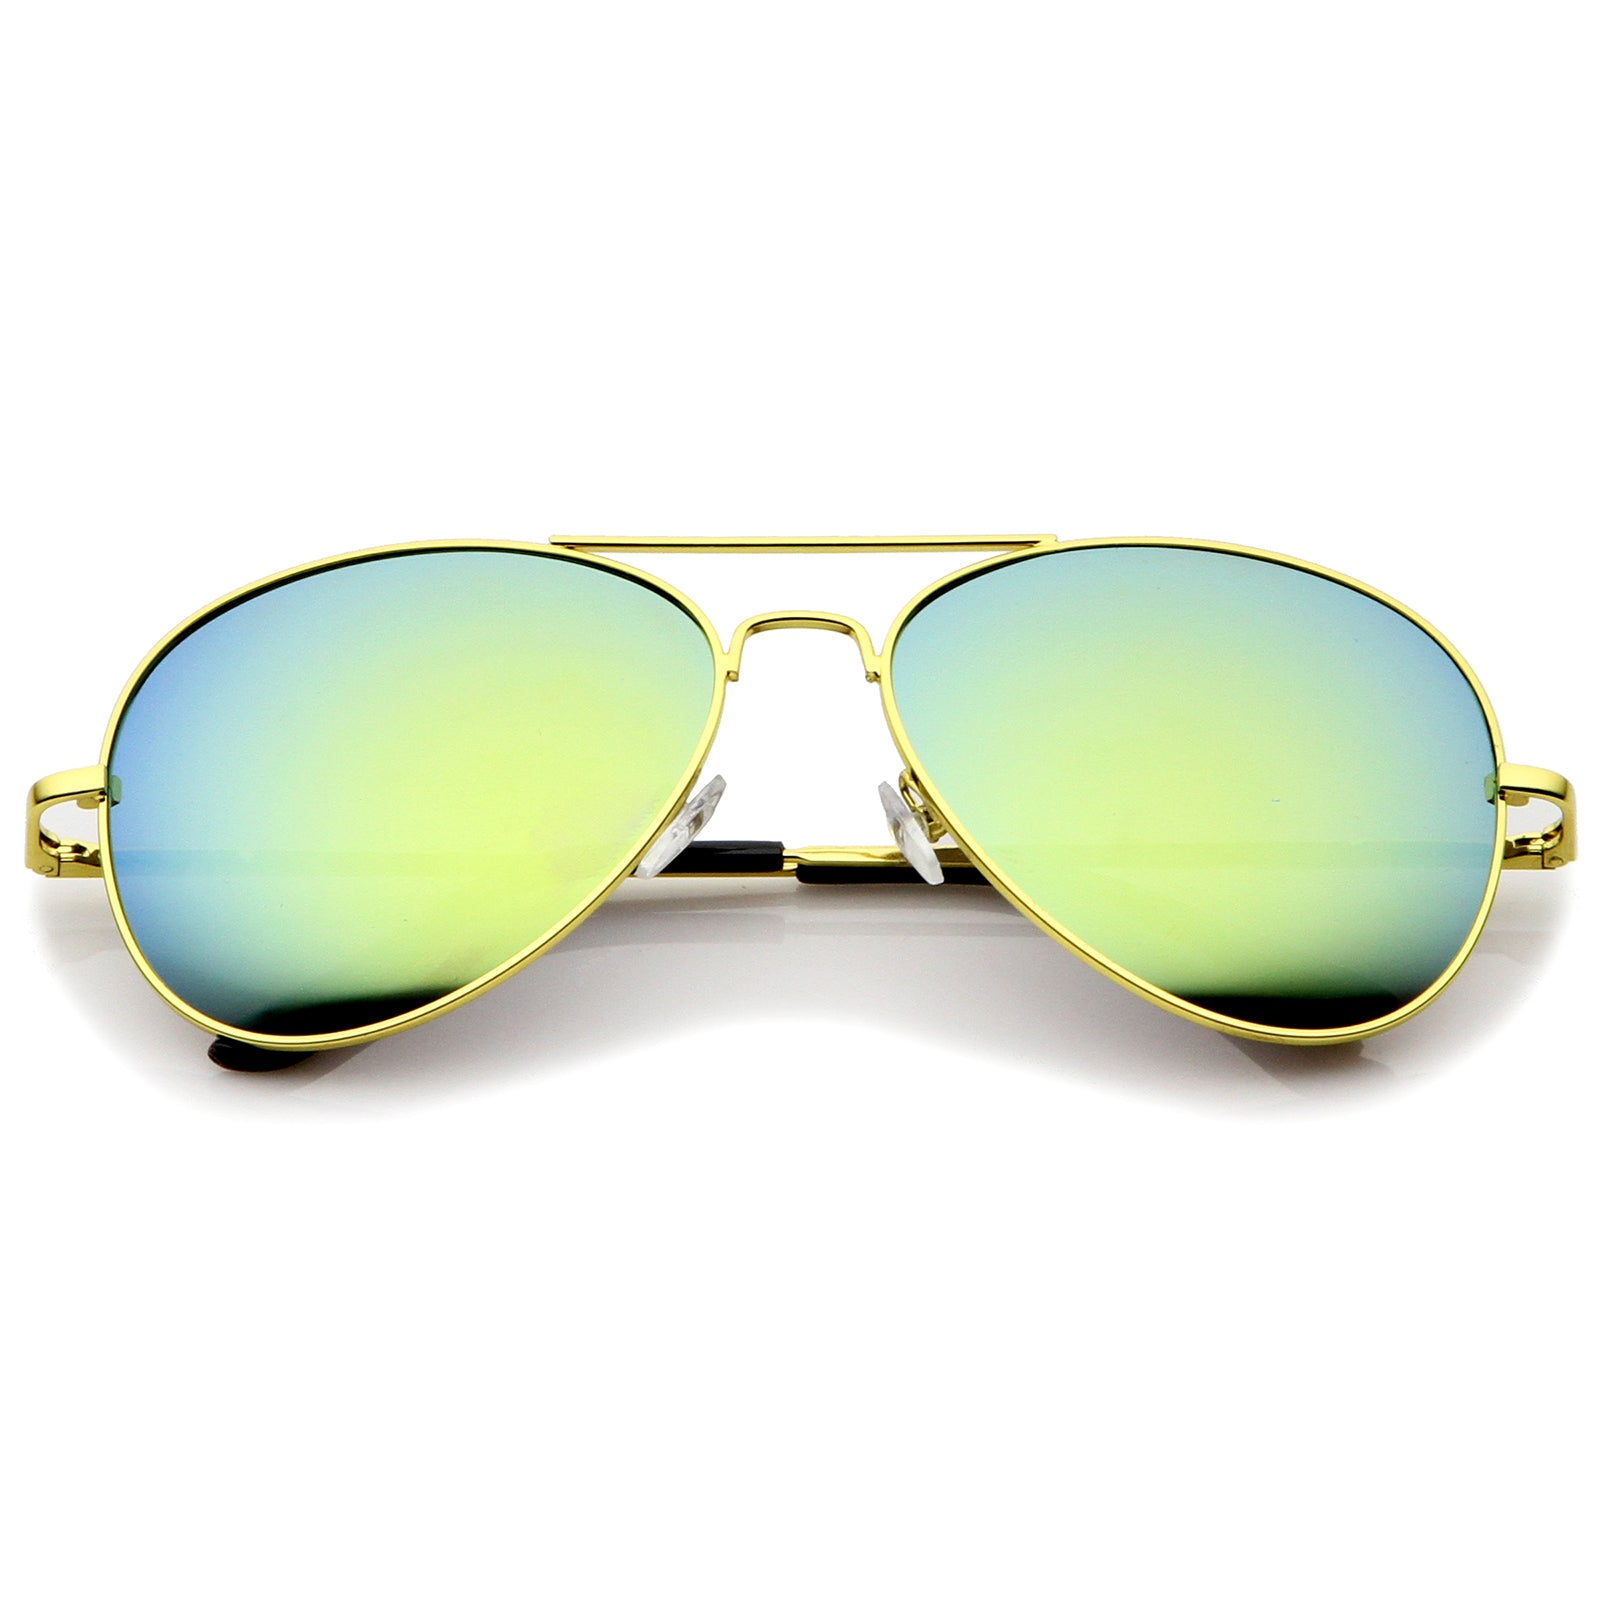 Classic Metal Frame Spring Hinges Color Mirror Lens Aviator Sunglasses 58mm - sunglass.la